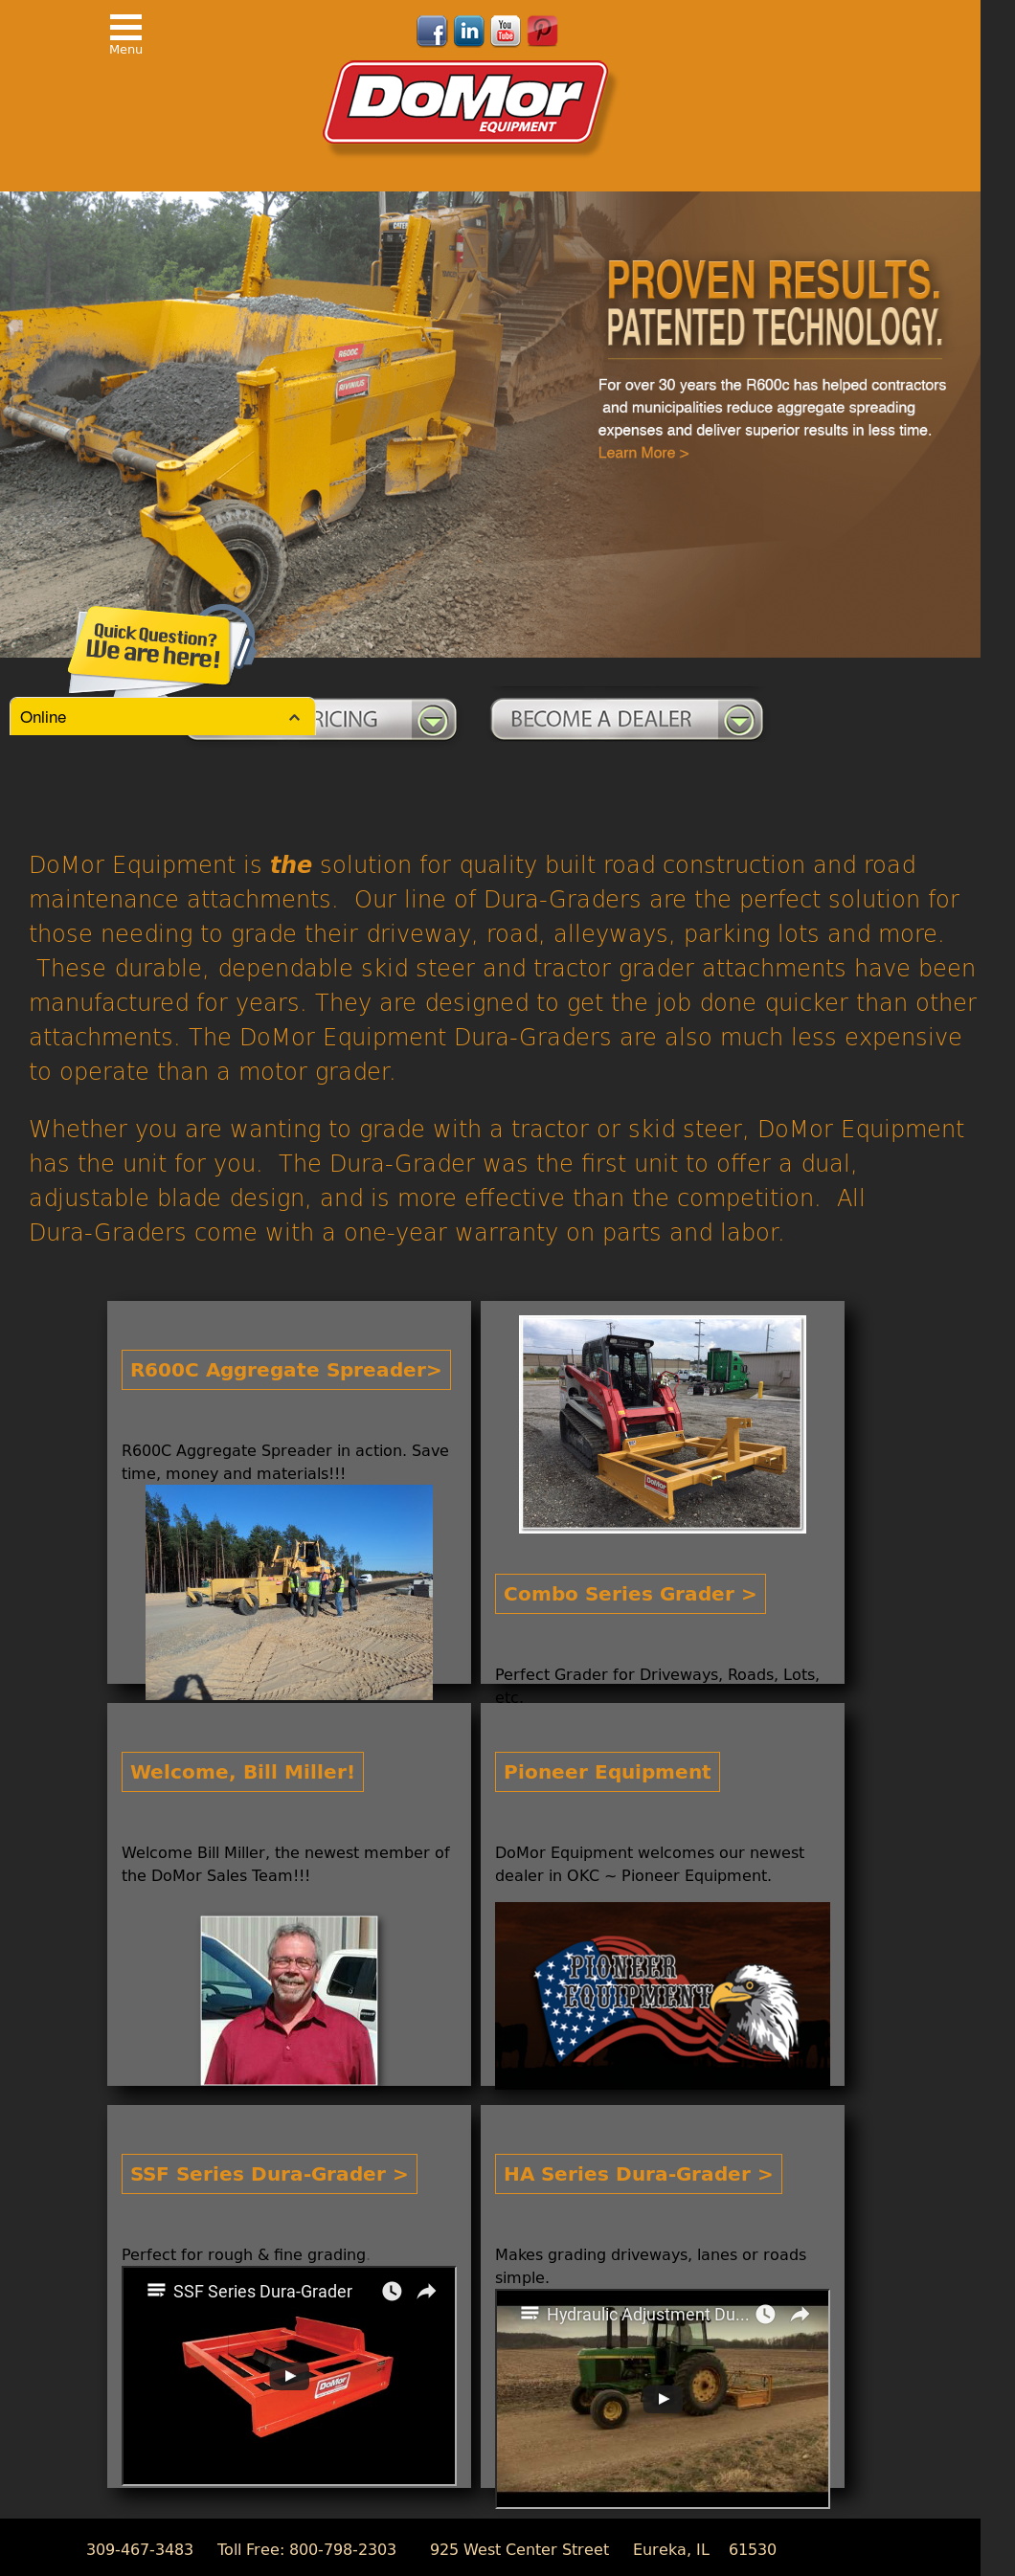 DoMor Equipment Competitors, Revenue and Employees - Owler